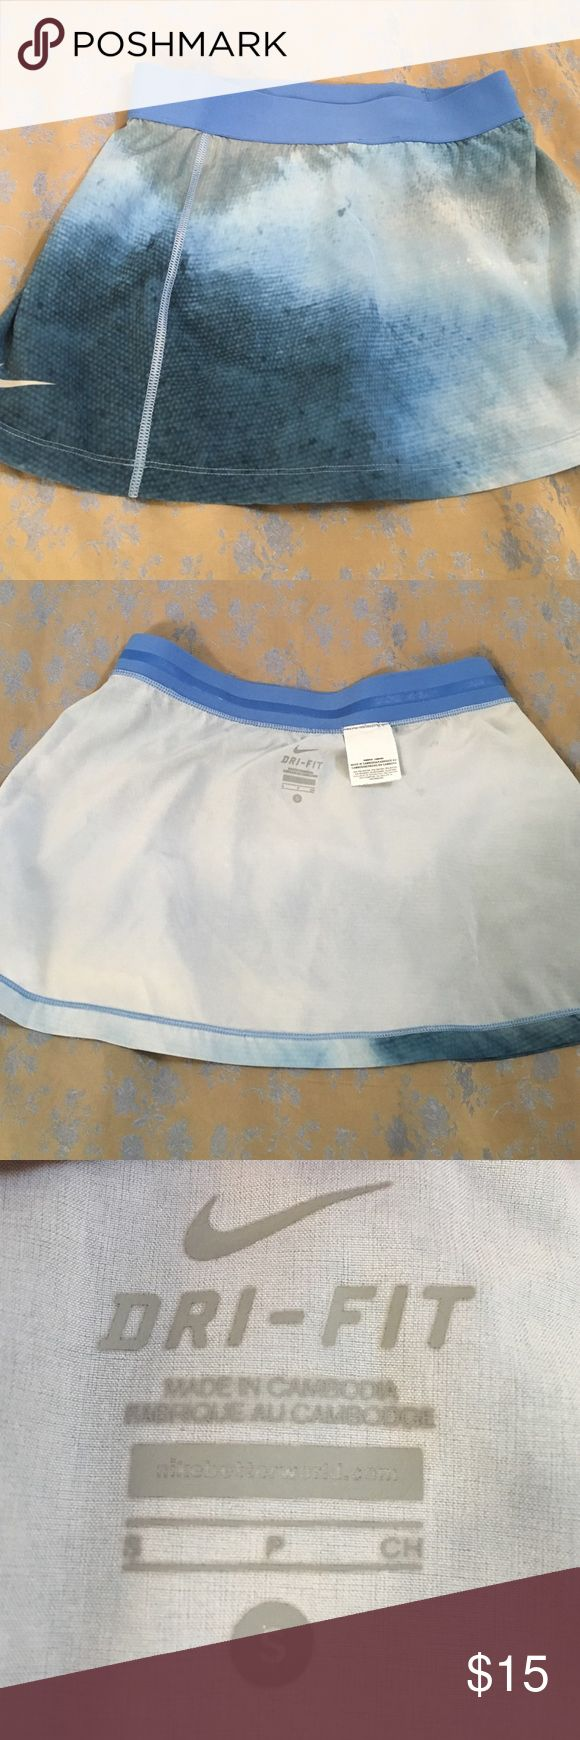 Nike tennis skirt Like new Nike Skirts